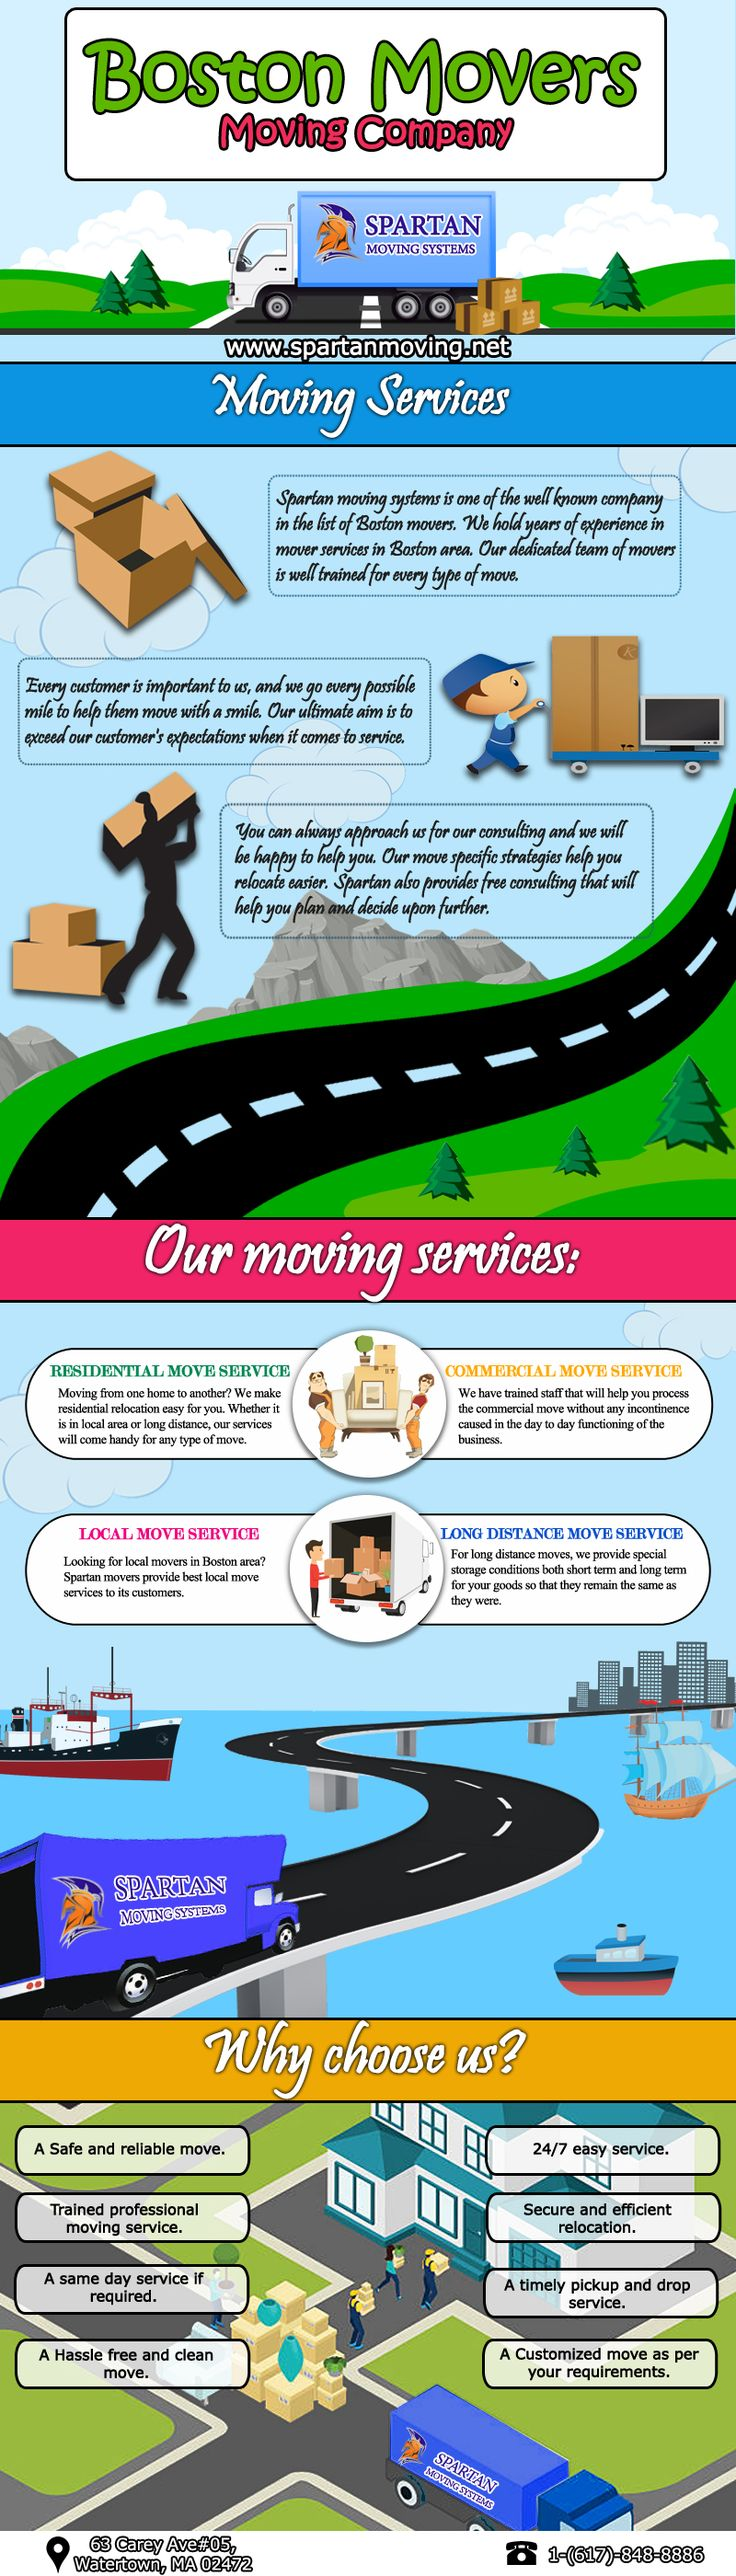 Boston Moving Services. A Safe and reliable move. Trained professional yet friendly crew for moving service. Best Massachusetts movers.